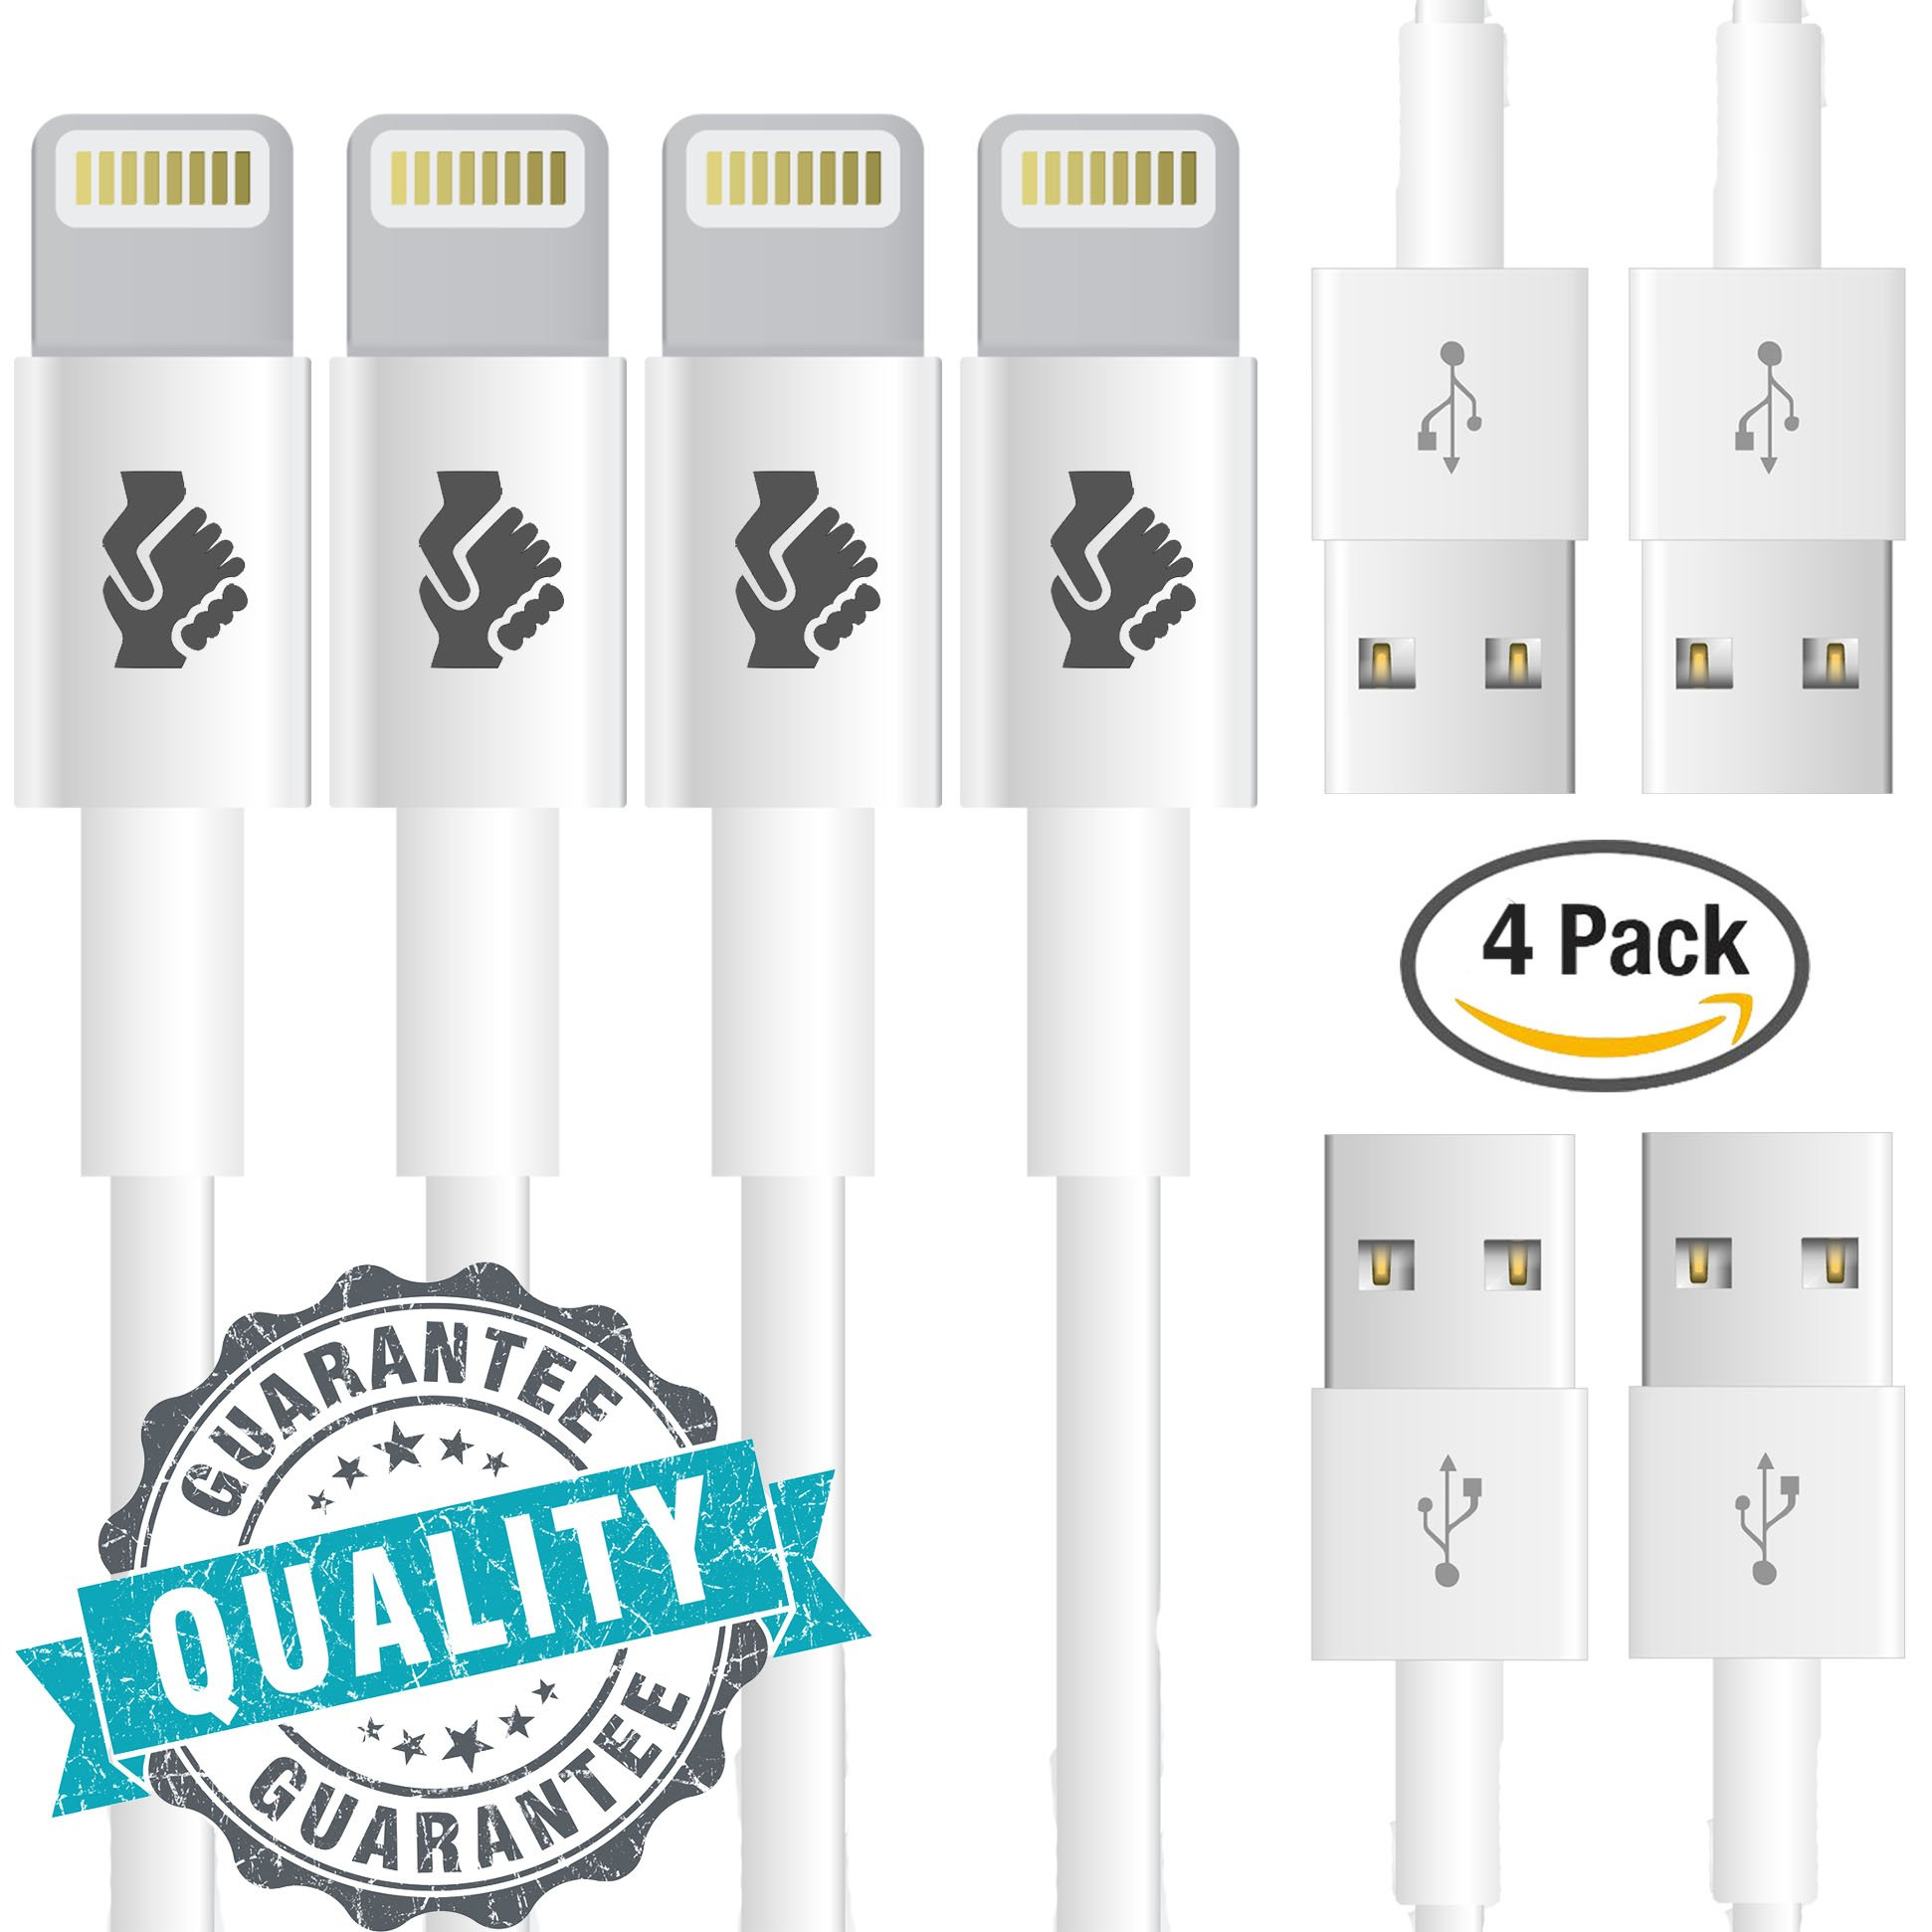 Trusted Cables (4 Pack) [Apple MFi Certified] Newest iPhone Cord Lightning Cable Charging Connector - Fast Syncing Speeds, iPhone 5/6/7/8/X and iPad(Compatible with Latest iOS)(4x 1m/3ft Cord) by Trusted Cables